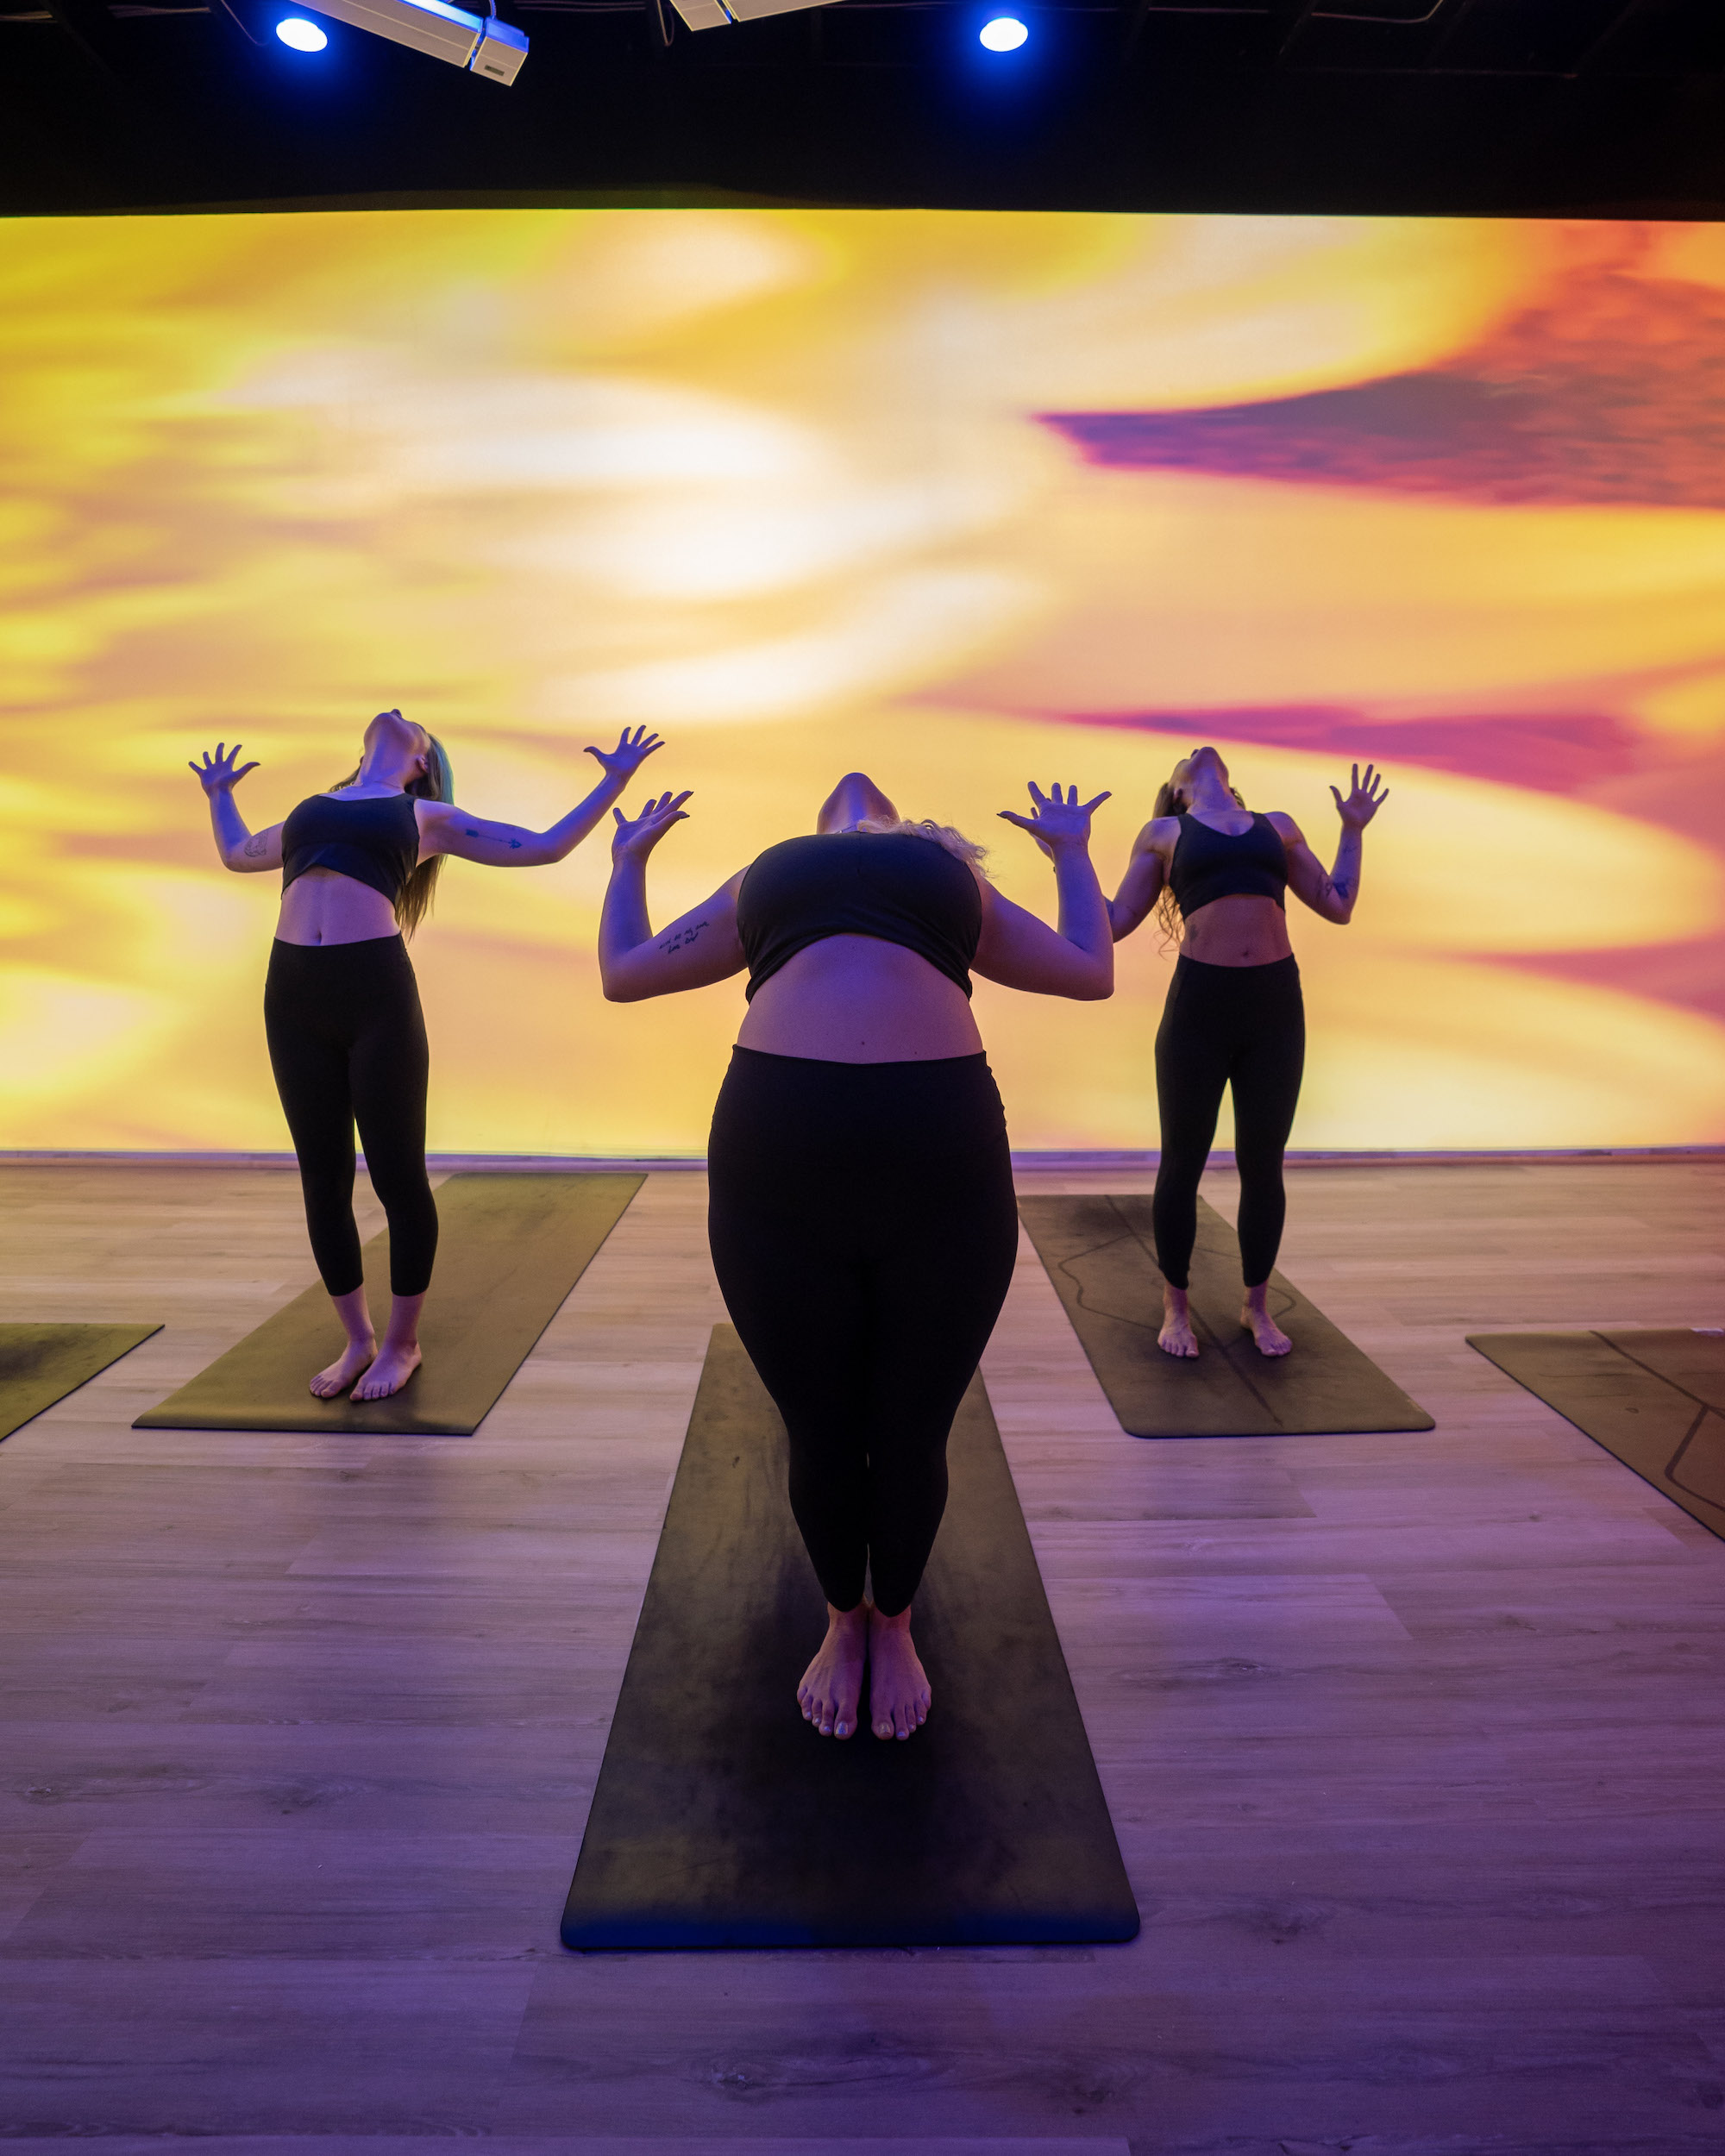 Rec Room reopens presenting the first new yoga concept in Memphis